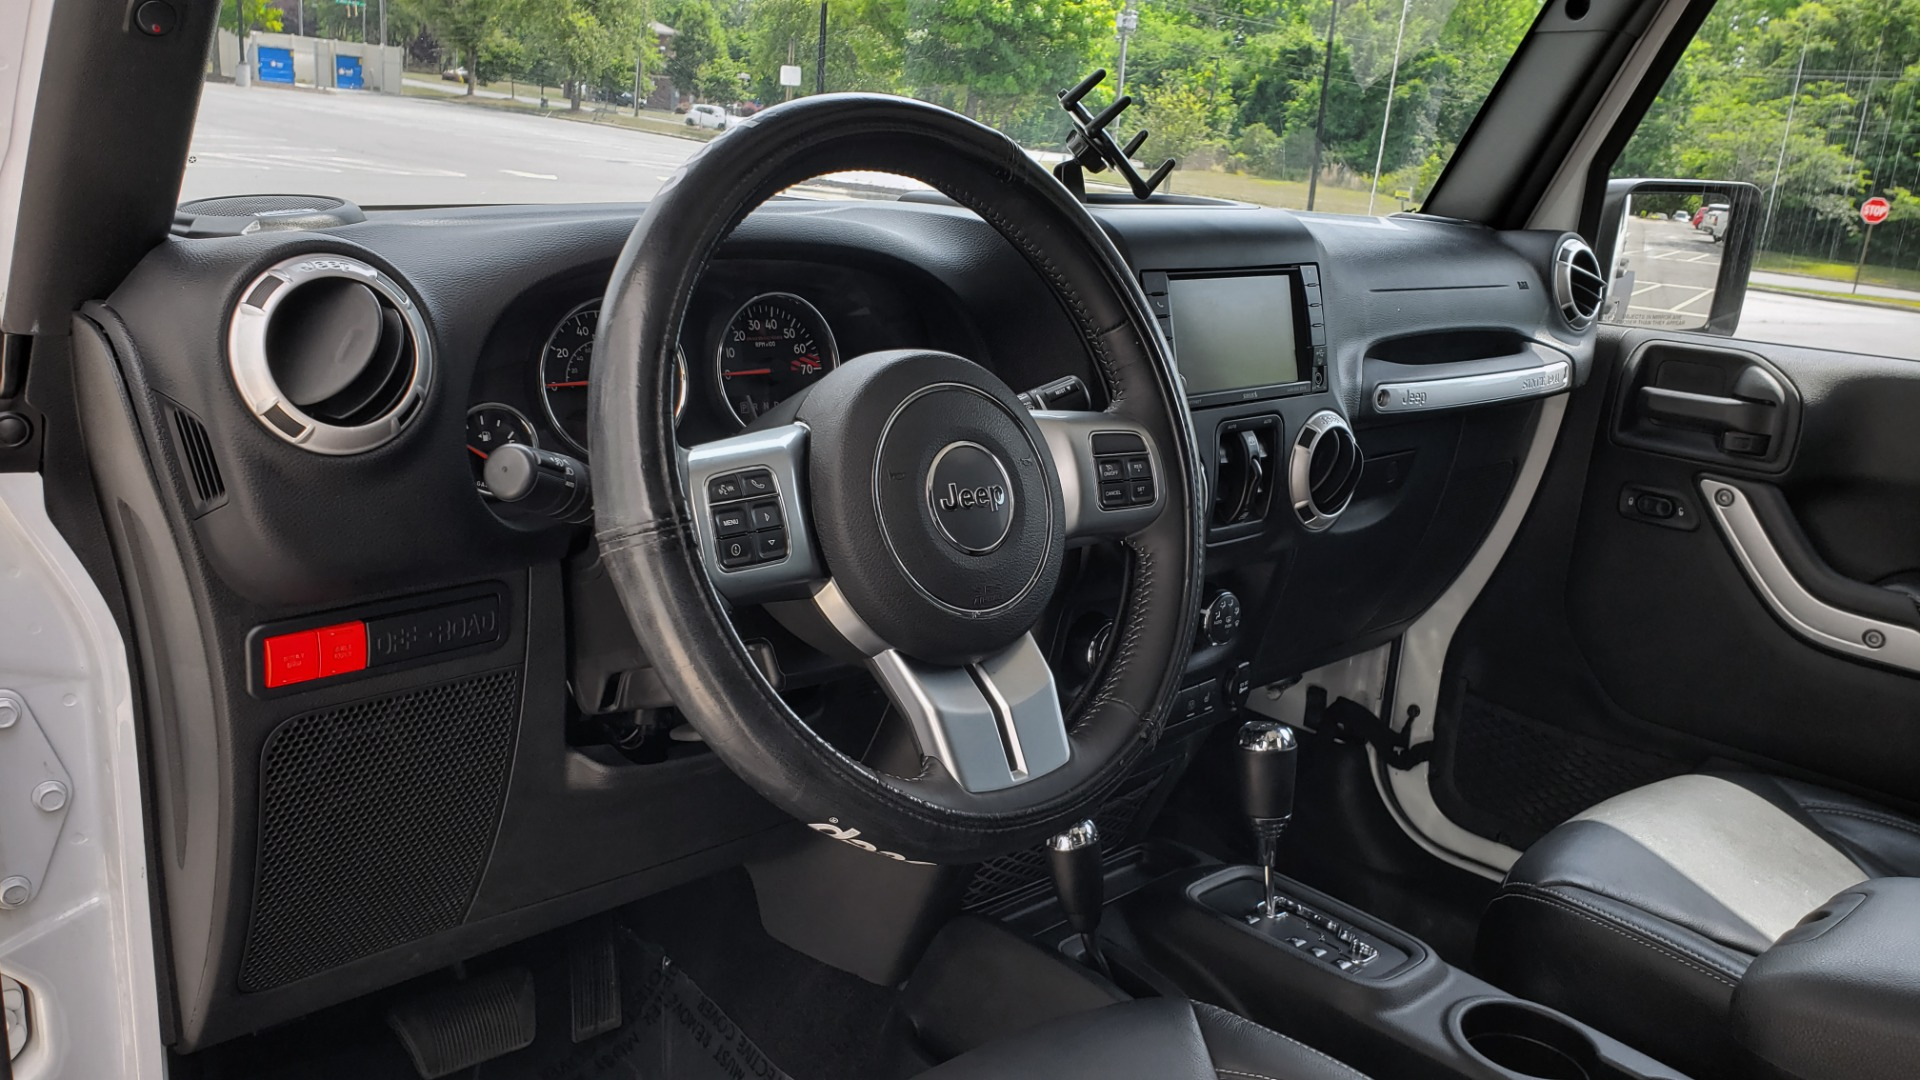 Used 2017 Jeep WRANGLER UNLIMITED RUBICON HARD ROCK 4X4 / 3.6L V6 / 5-SPD AUTO / NAV / REMOTE START for sale Sold at Formula Imports in Charlotte NC 28227 36